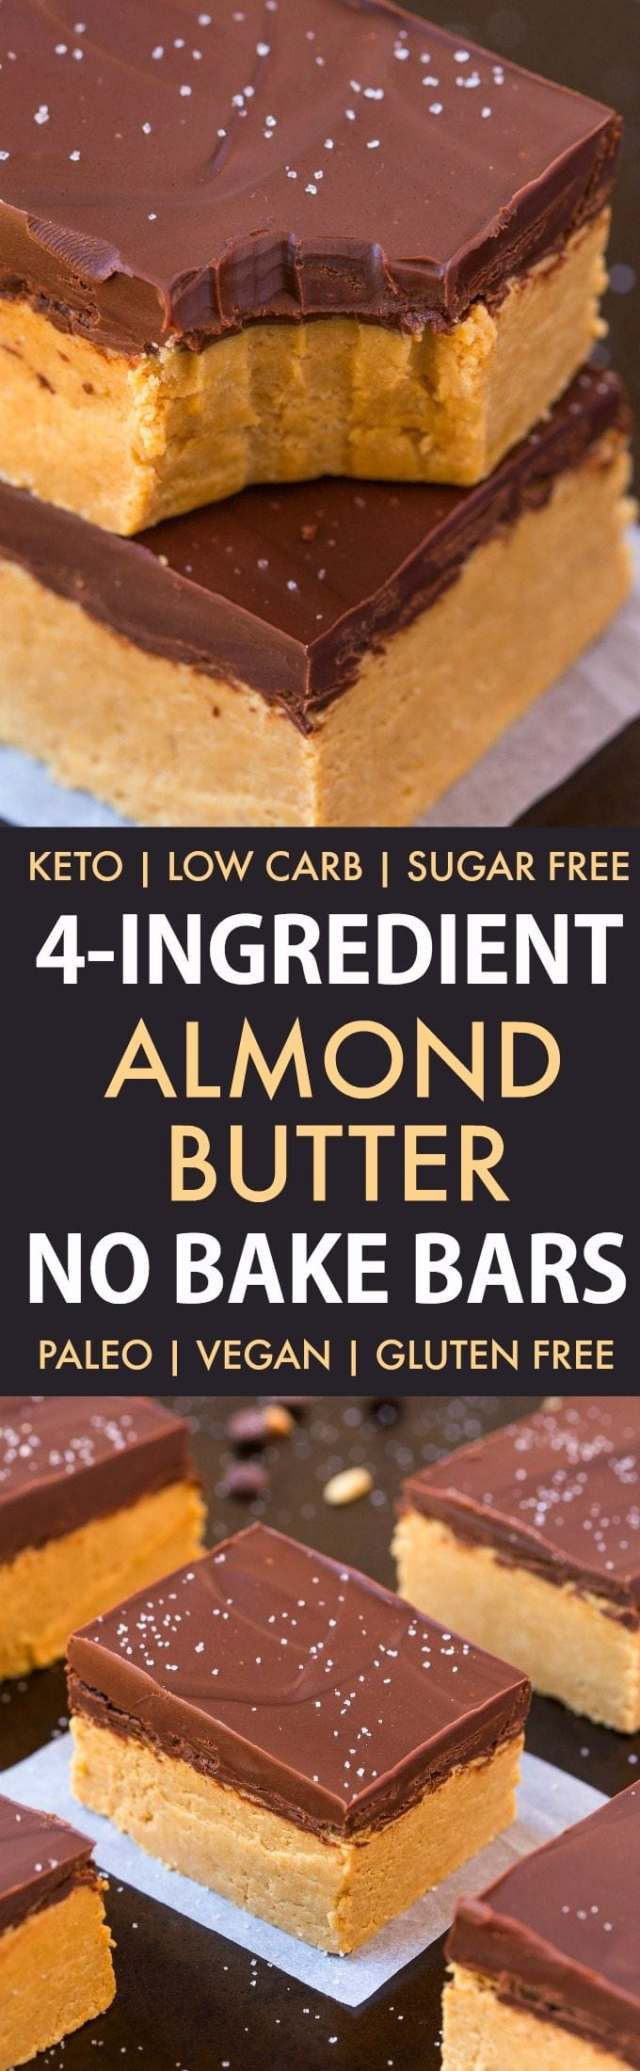 4-Ingredient No Bake Almond Butter Bars (Low Carb, Paleo, Vegan, Keto, Sugar Free, Gluten Free)- Easy, healthy and seriously addictive protein packed almond butter bars using just 4 ingredients and needing 5 minutes. | #keto #ketodessert #almondbutter #dairyfree #healthy #nobake | Recipe on thebigmansworld.com